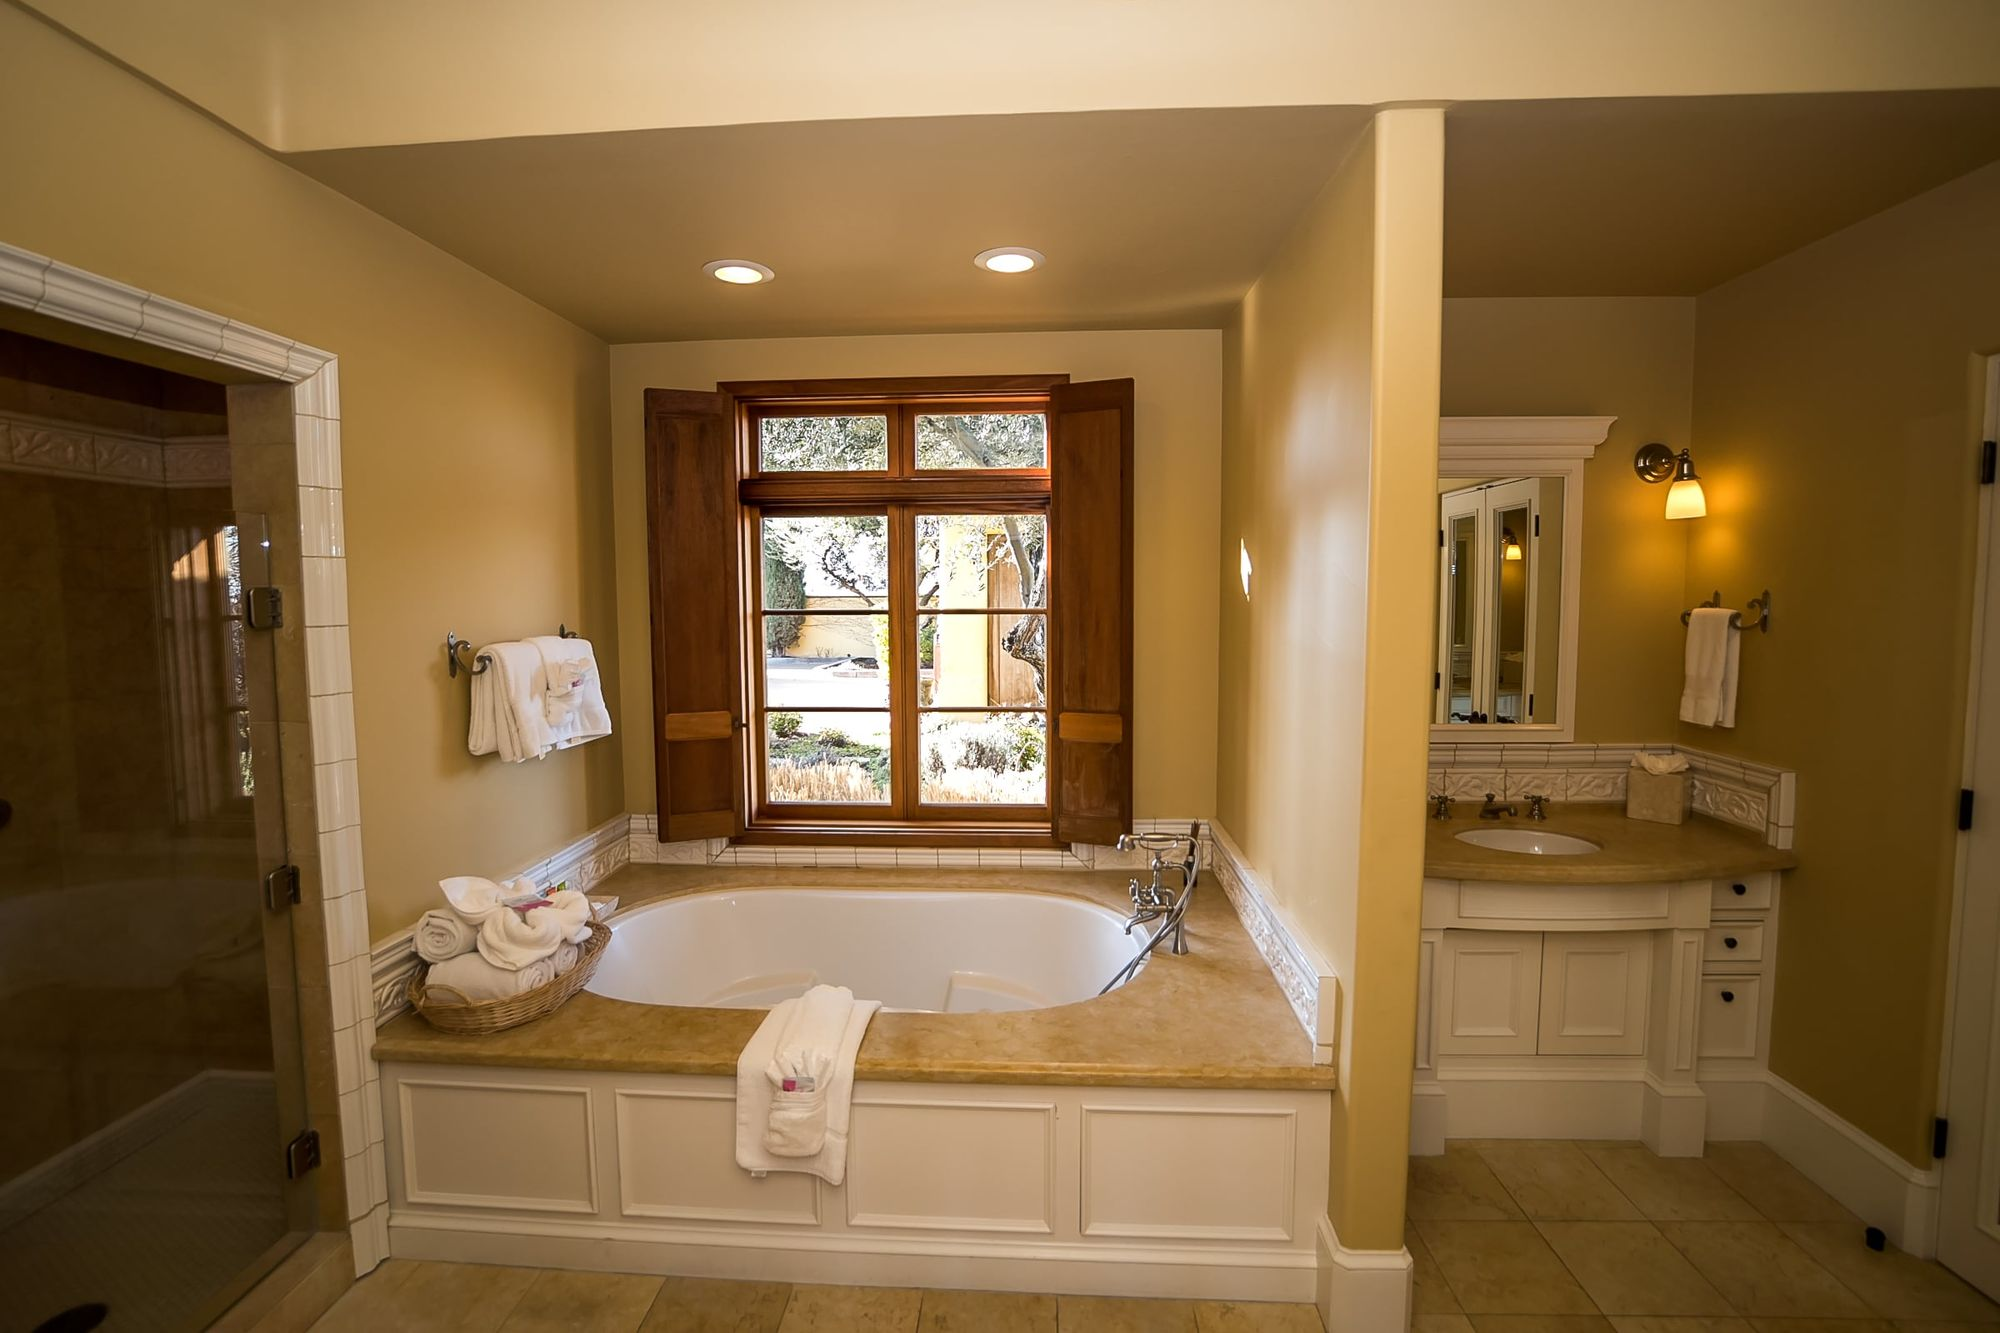 Bathroom with spa tub and towels in a basket with a vanity to the left